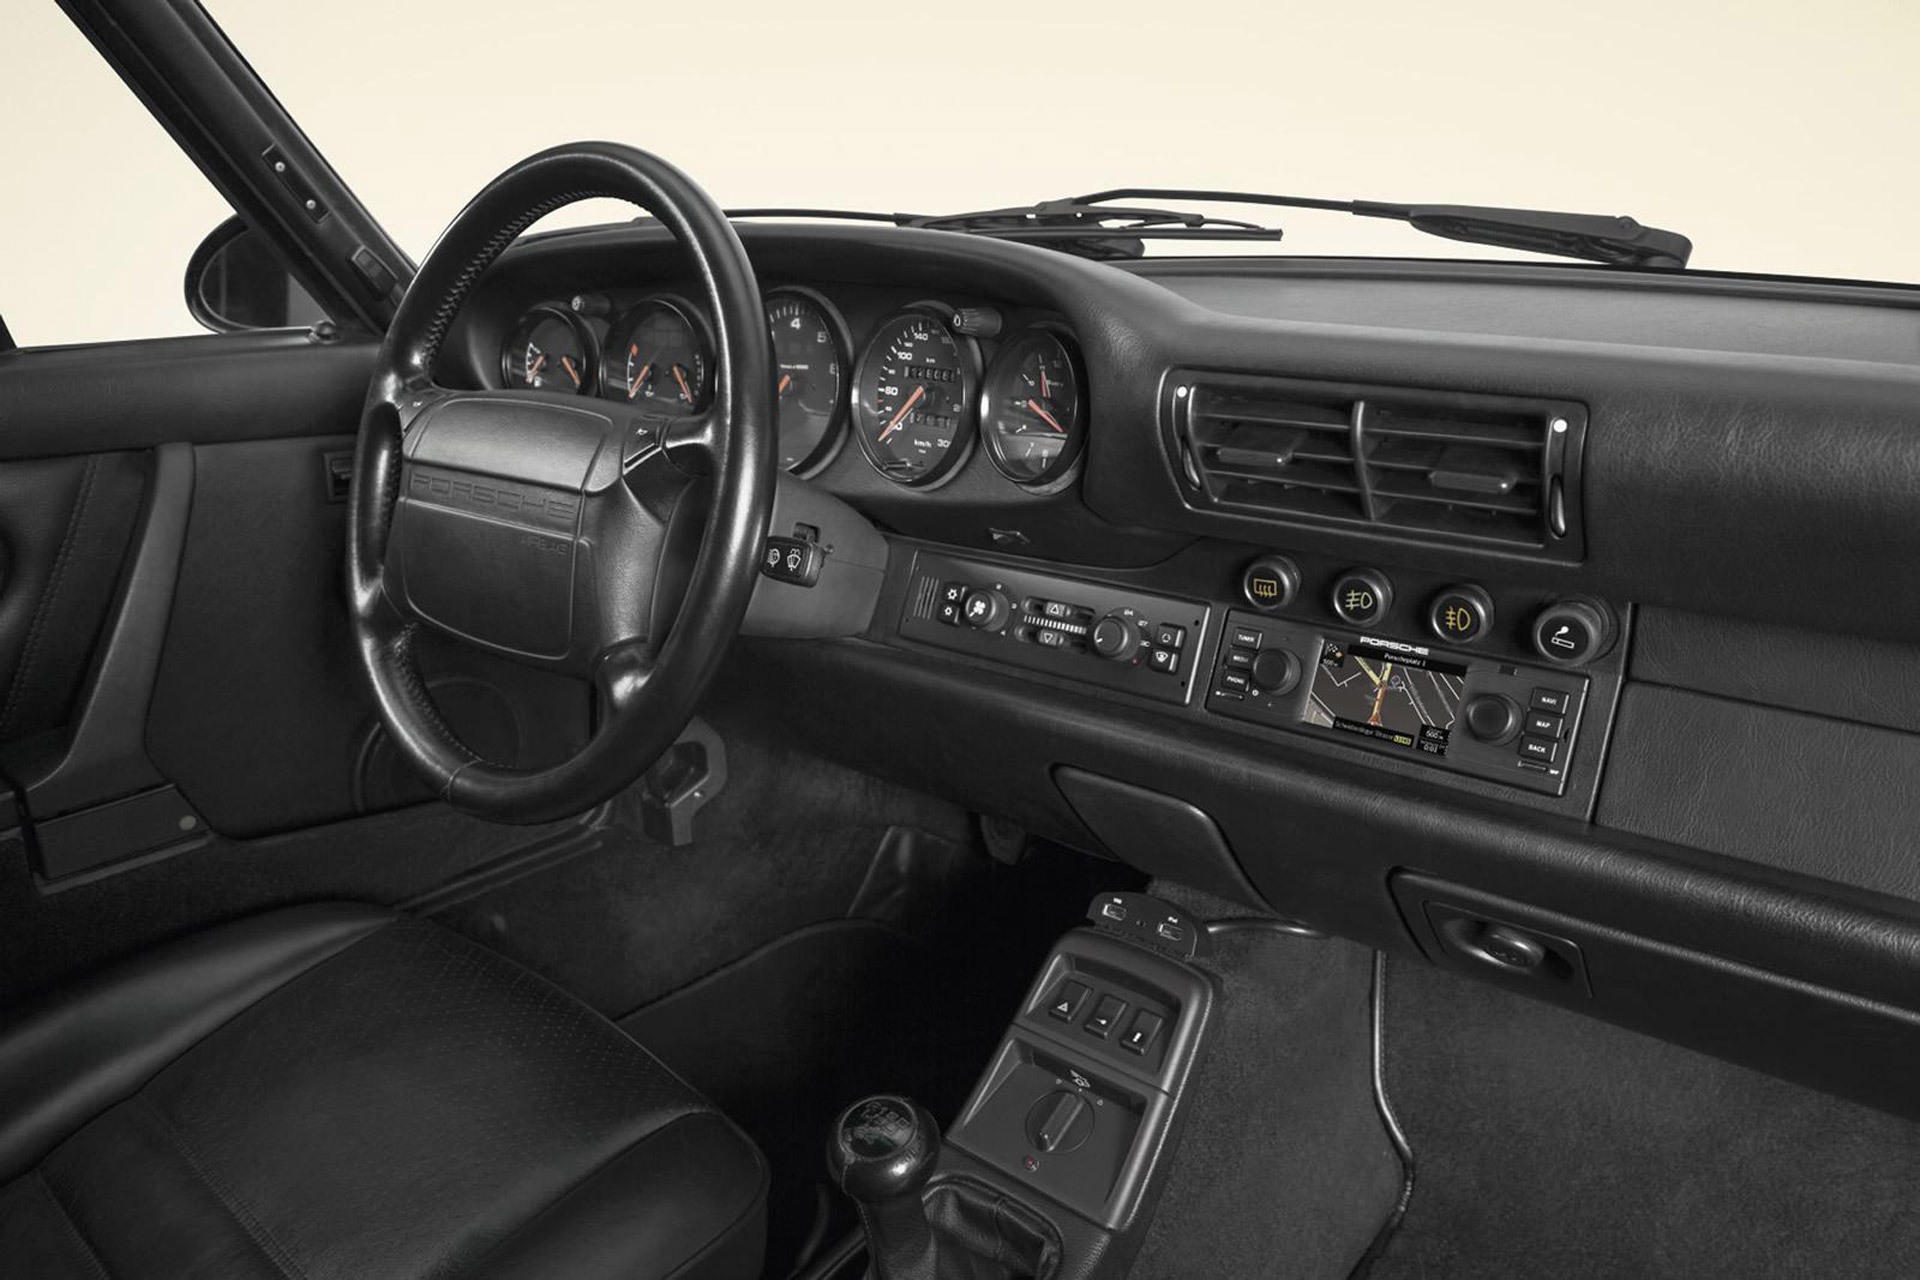 Porsche Classic Develops Uber Cool Retrofit Gps Radio For